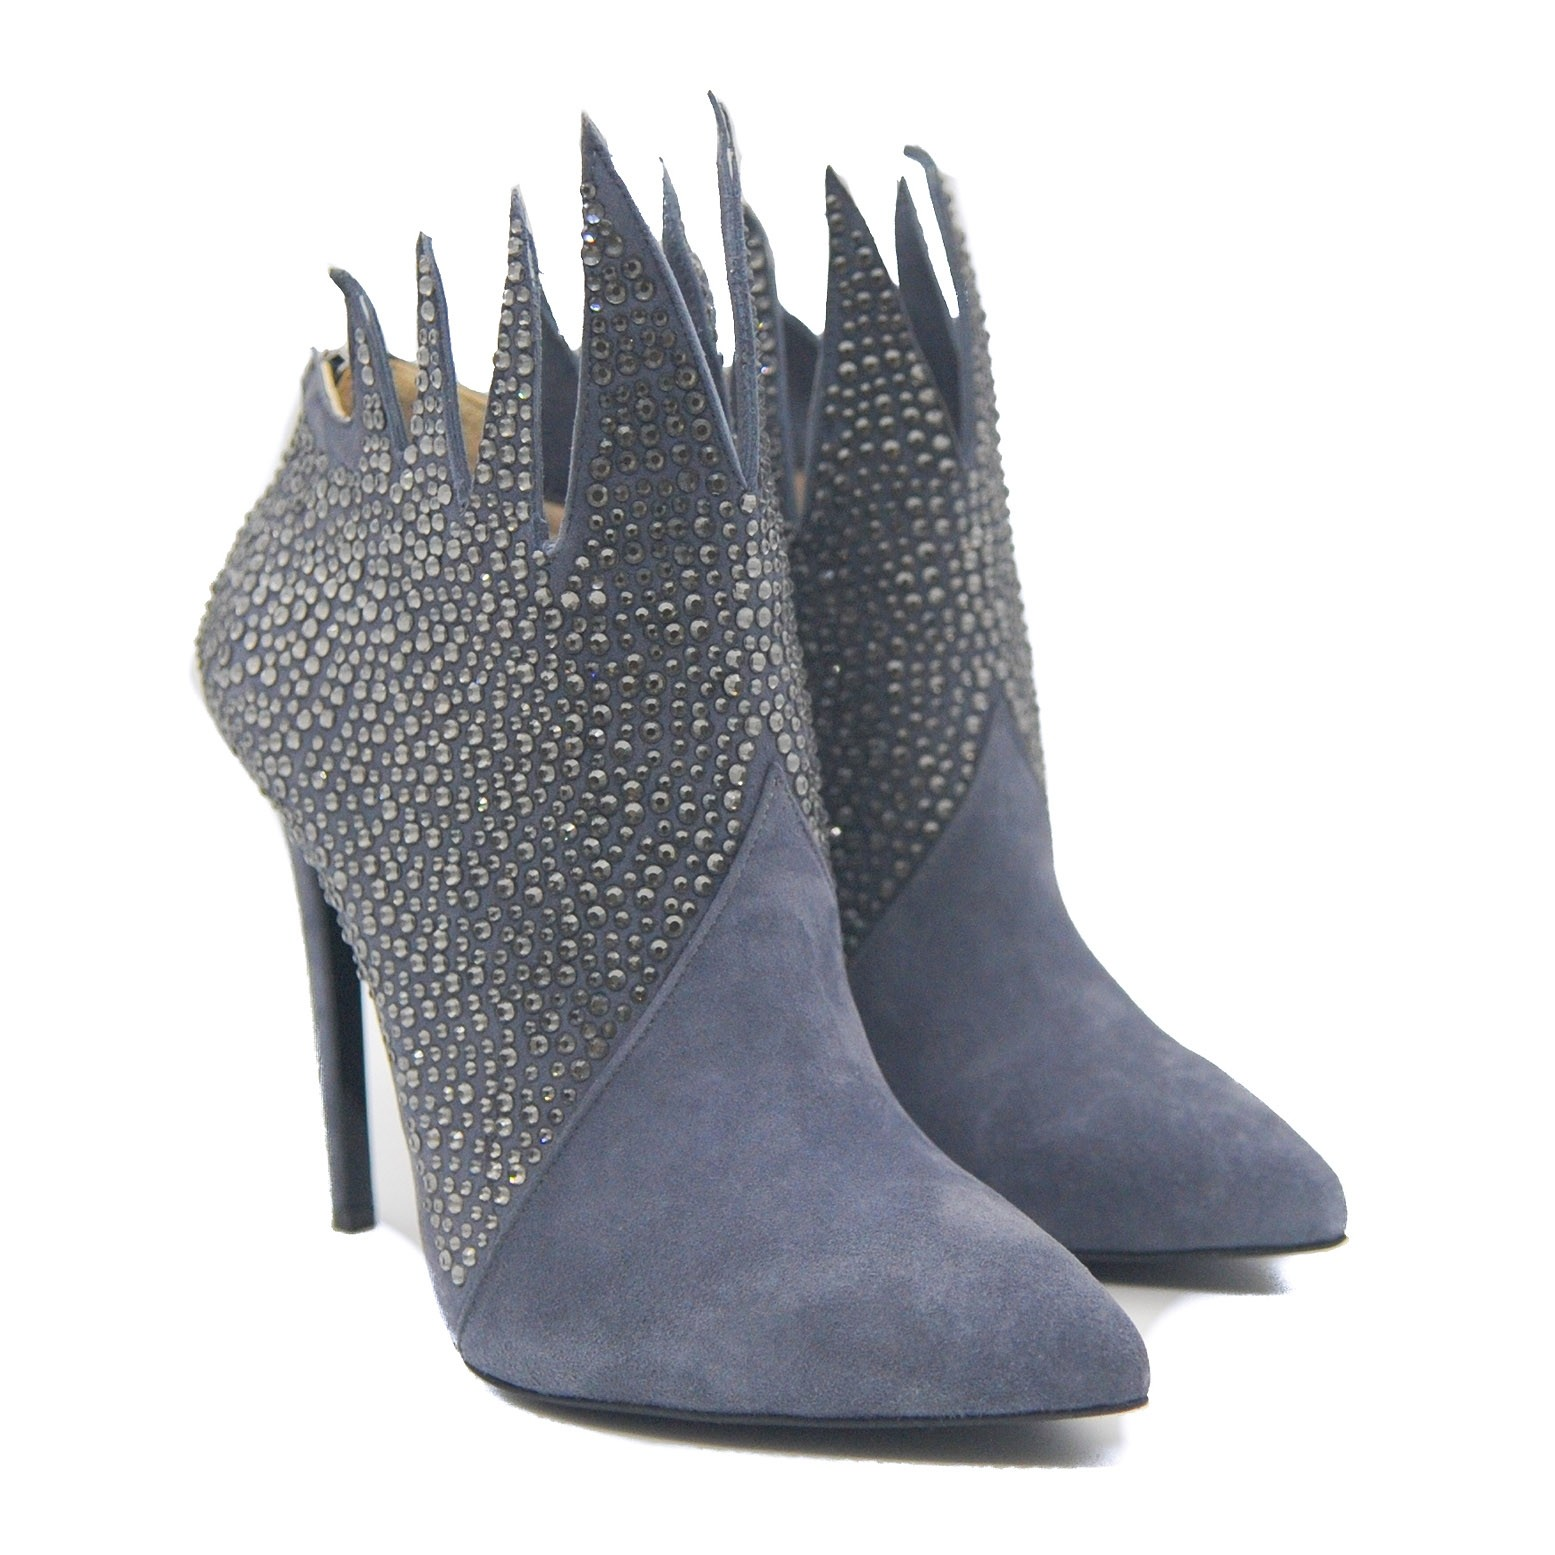 Goody2Shoes Suede Stiletto Grey Shoe Boot Jewel Encrusted with Flame Effect Ankle